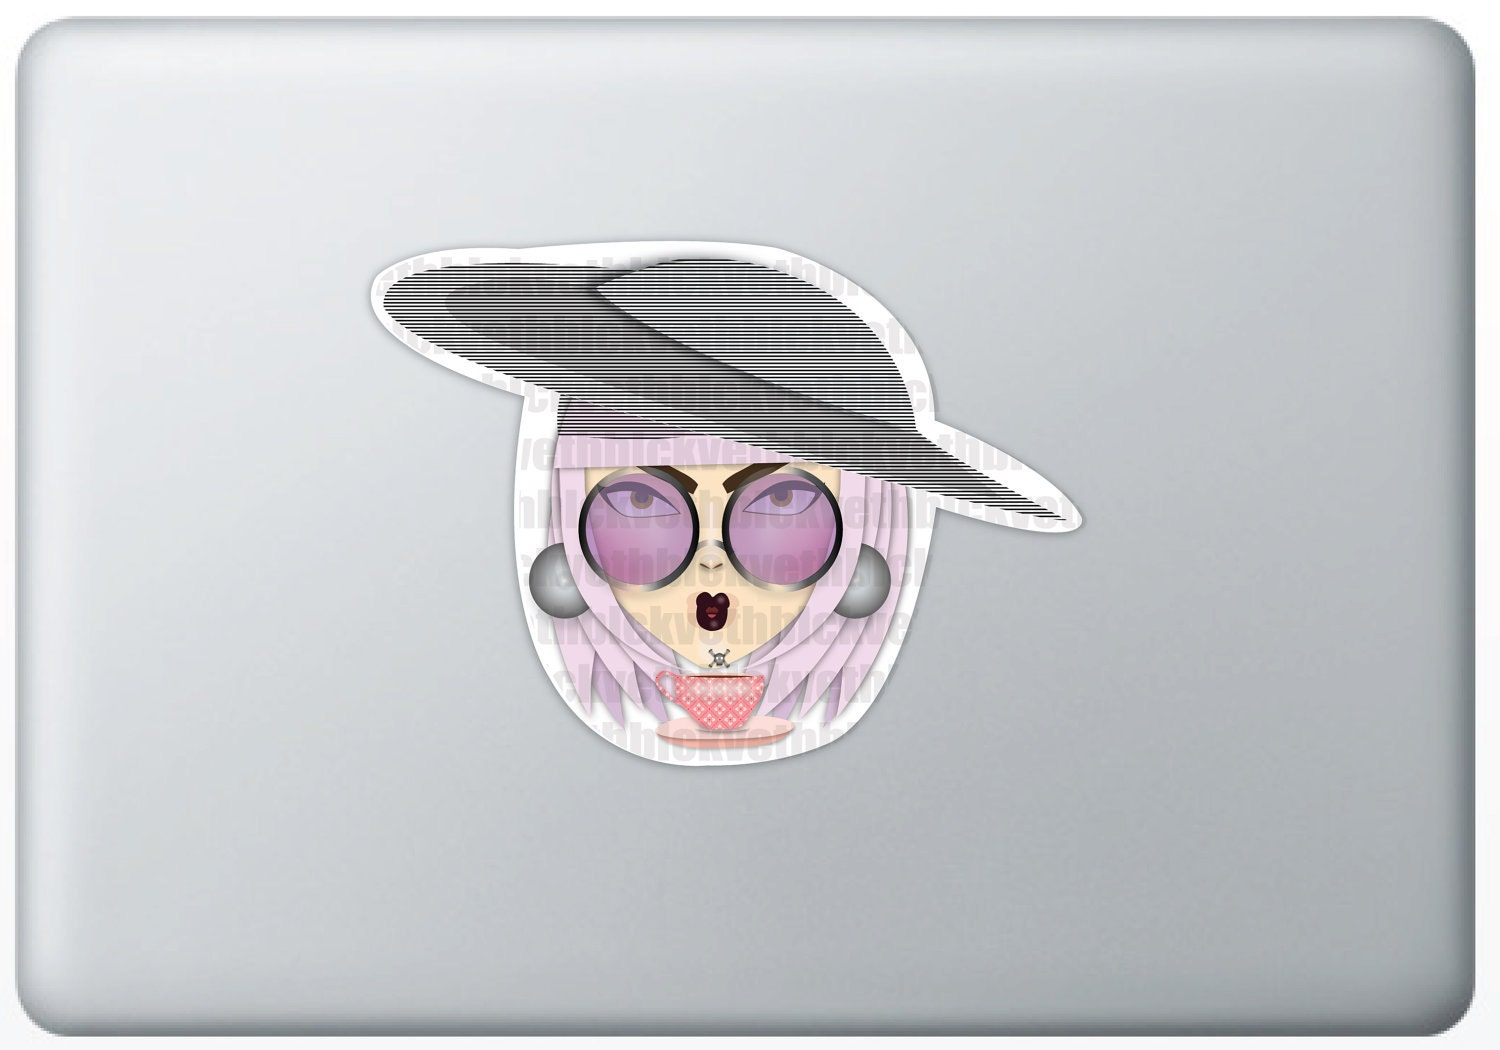 Chicky Lady Gaga, Sticker - VethBlack